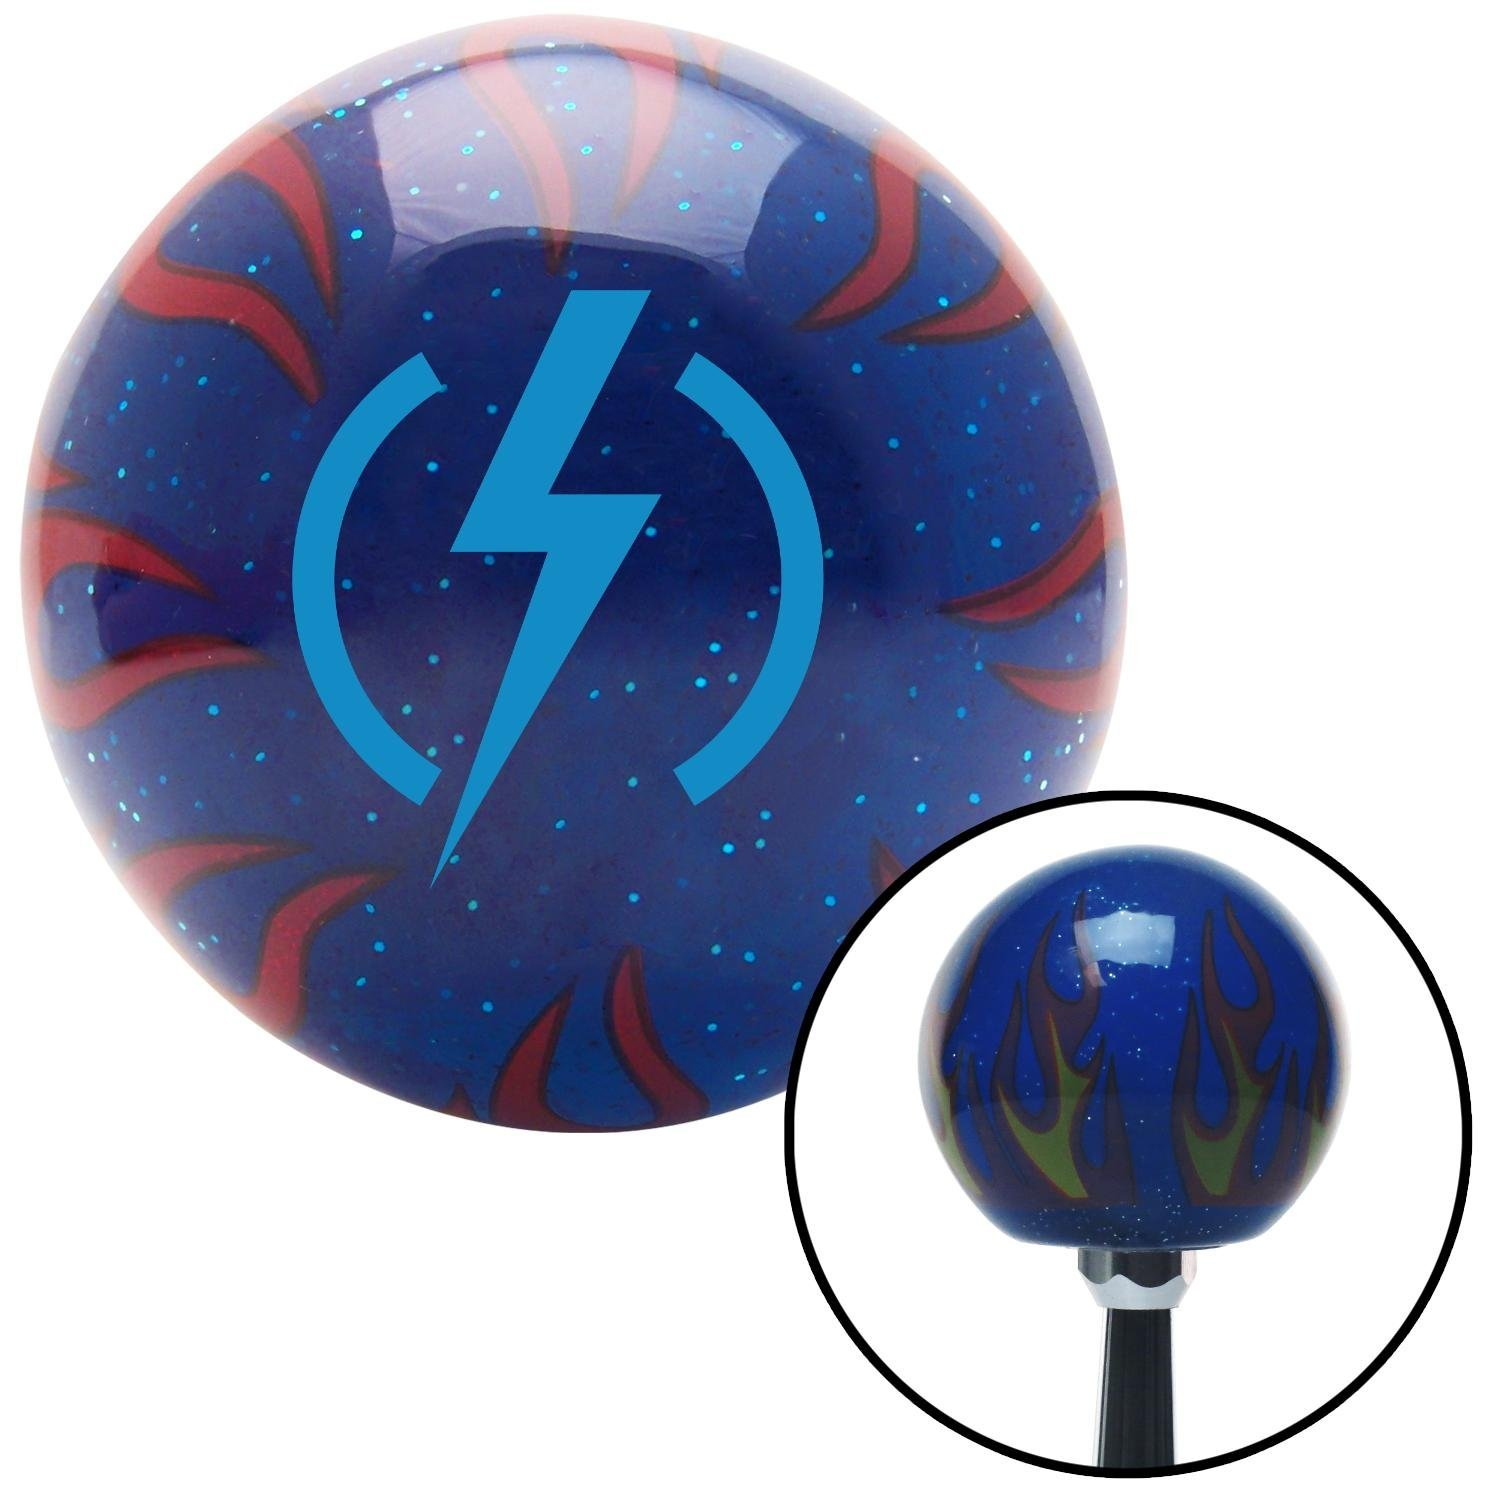 American Shifter 244101 Blue Flame Metal Flake Shift Knob with M16 x 1.5 Insert Blue Bolt